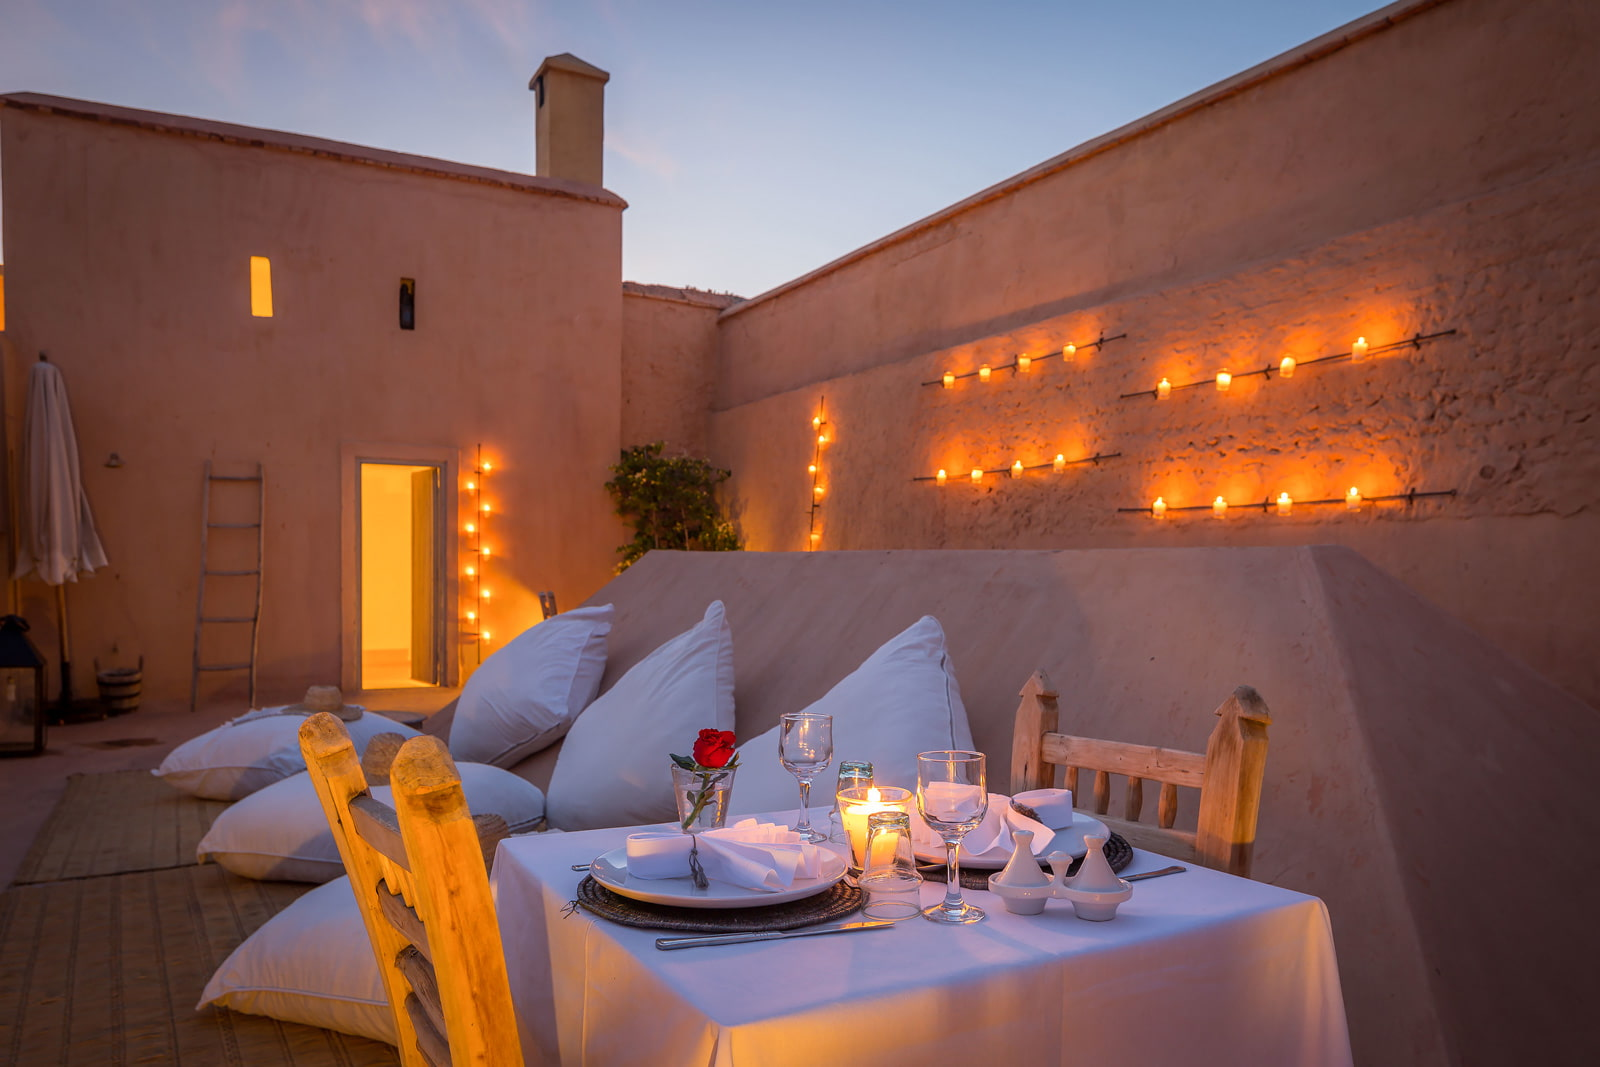 Coxy rooftop space in Marrakech